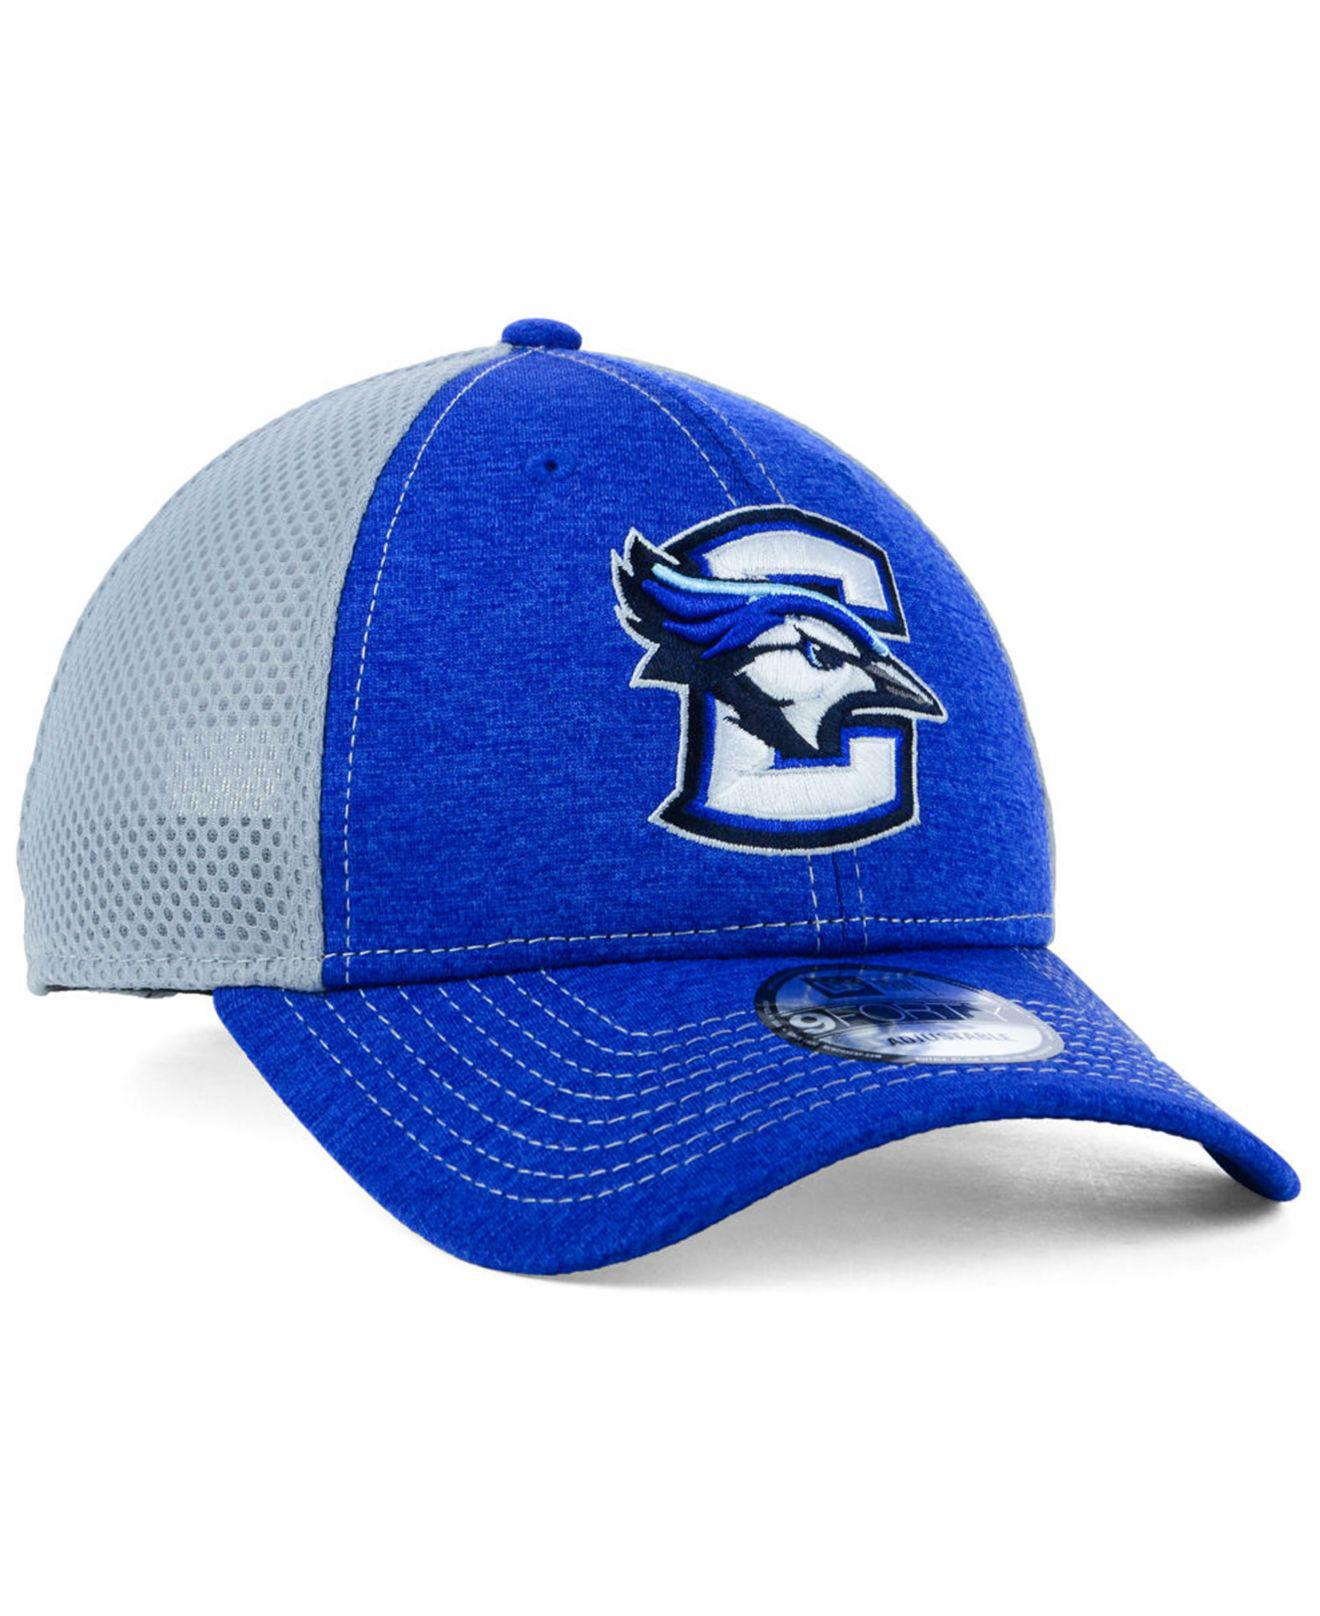 outlet store 3d412 a32fd wholesale creighton bluejays ncaa vintage flat bill snapback retro 2 tone  cap hat new 76c1c c9510  coupon lyst ktz creighton blue jays shadow turn  9forty ...